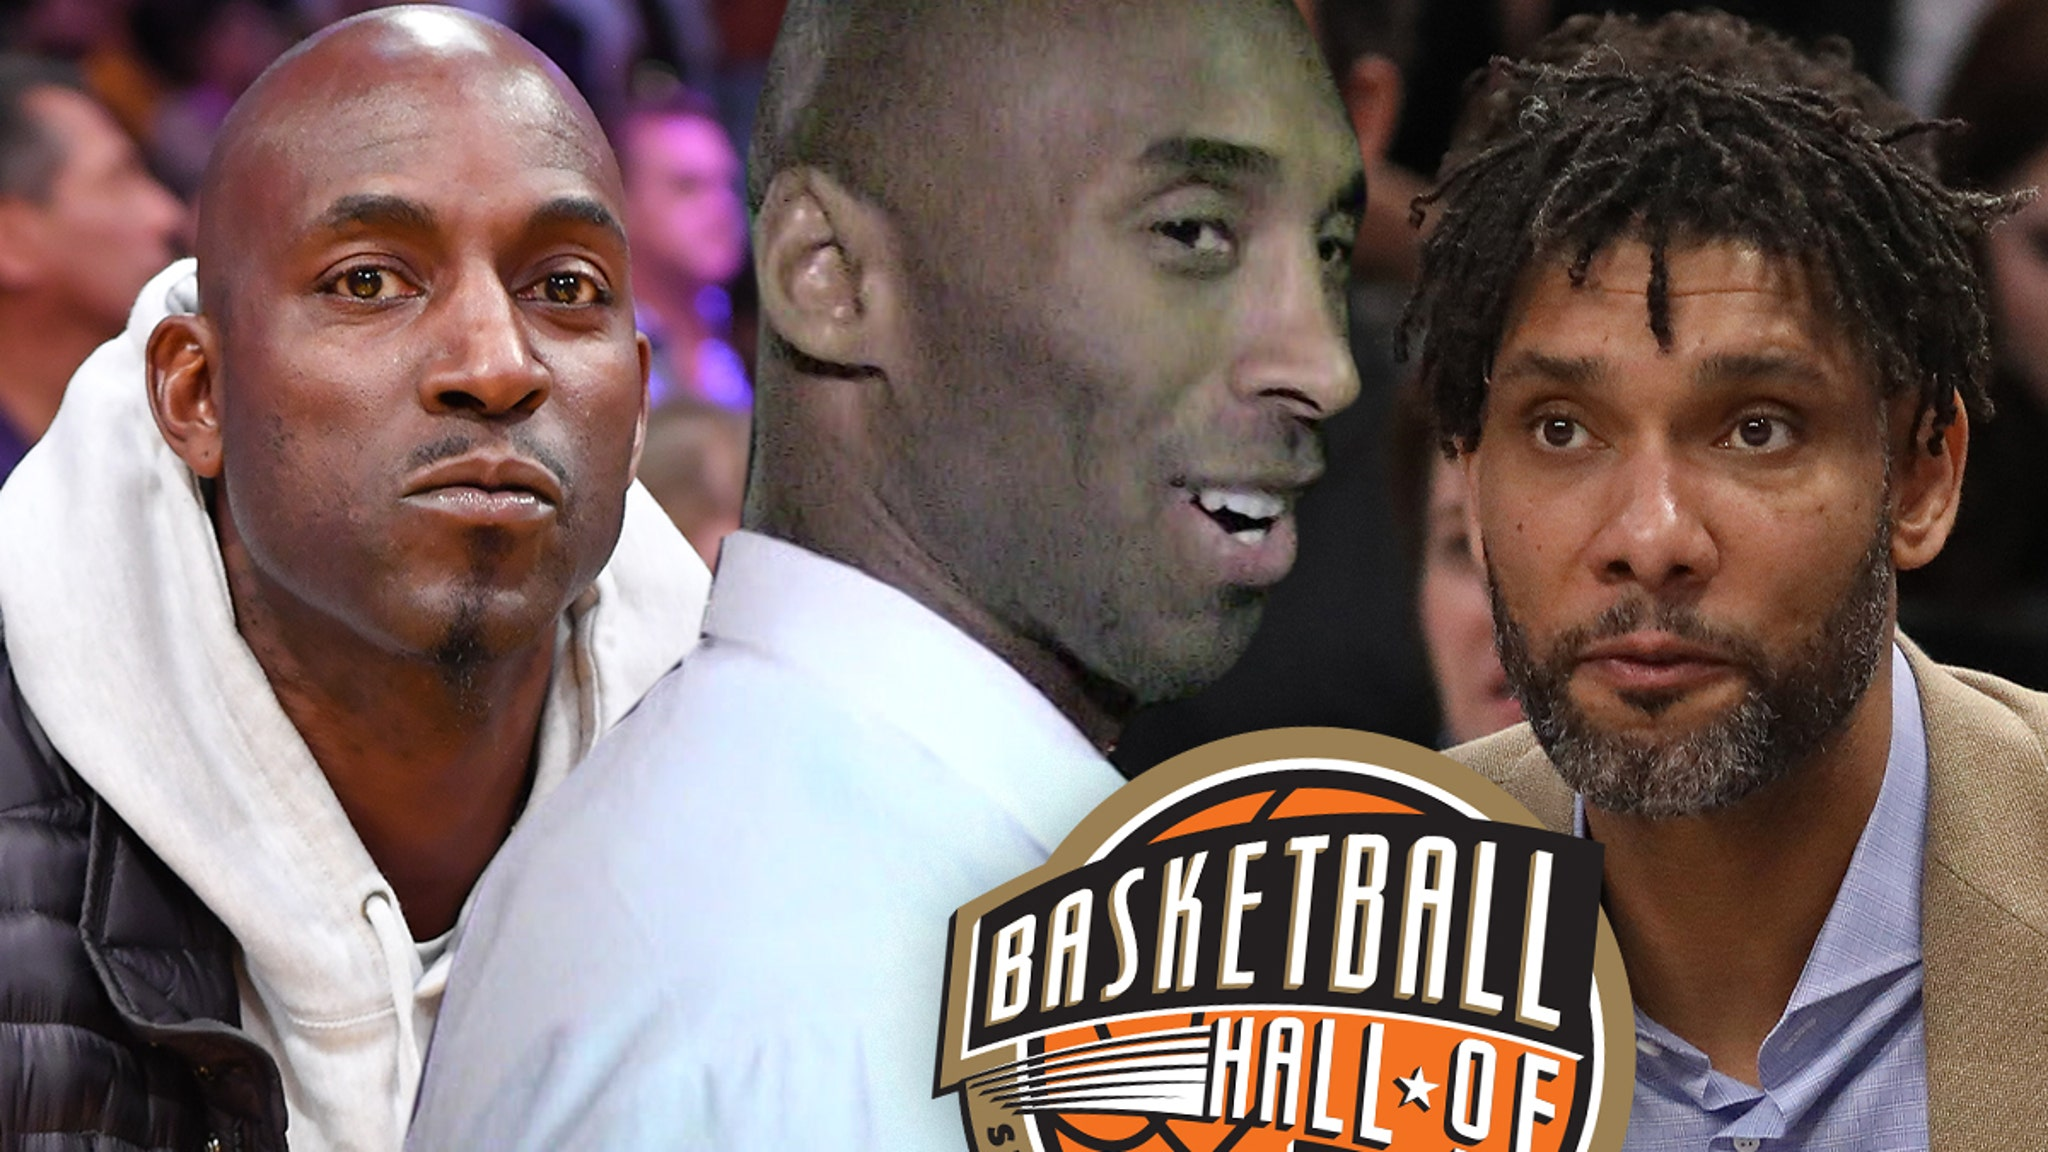 Kobe Bryant To Be Inducted Into Basketball Hall of Fame With KG, Tim Duncan - TMZ